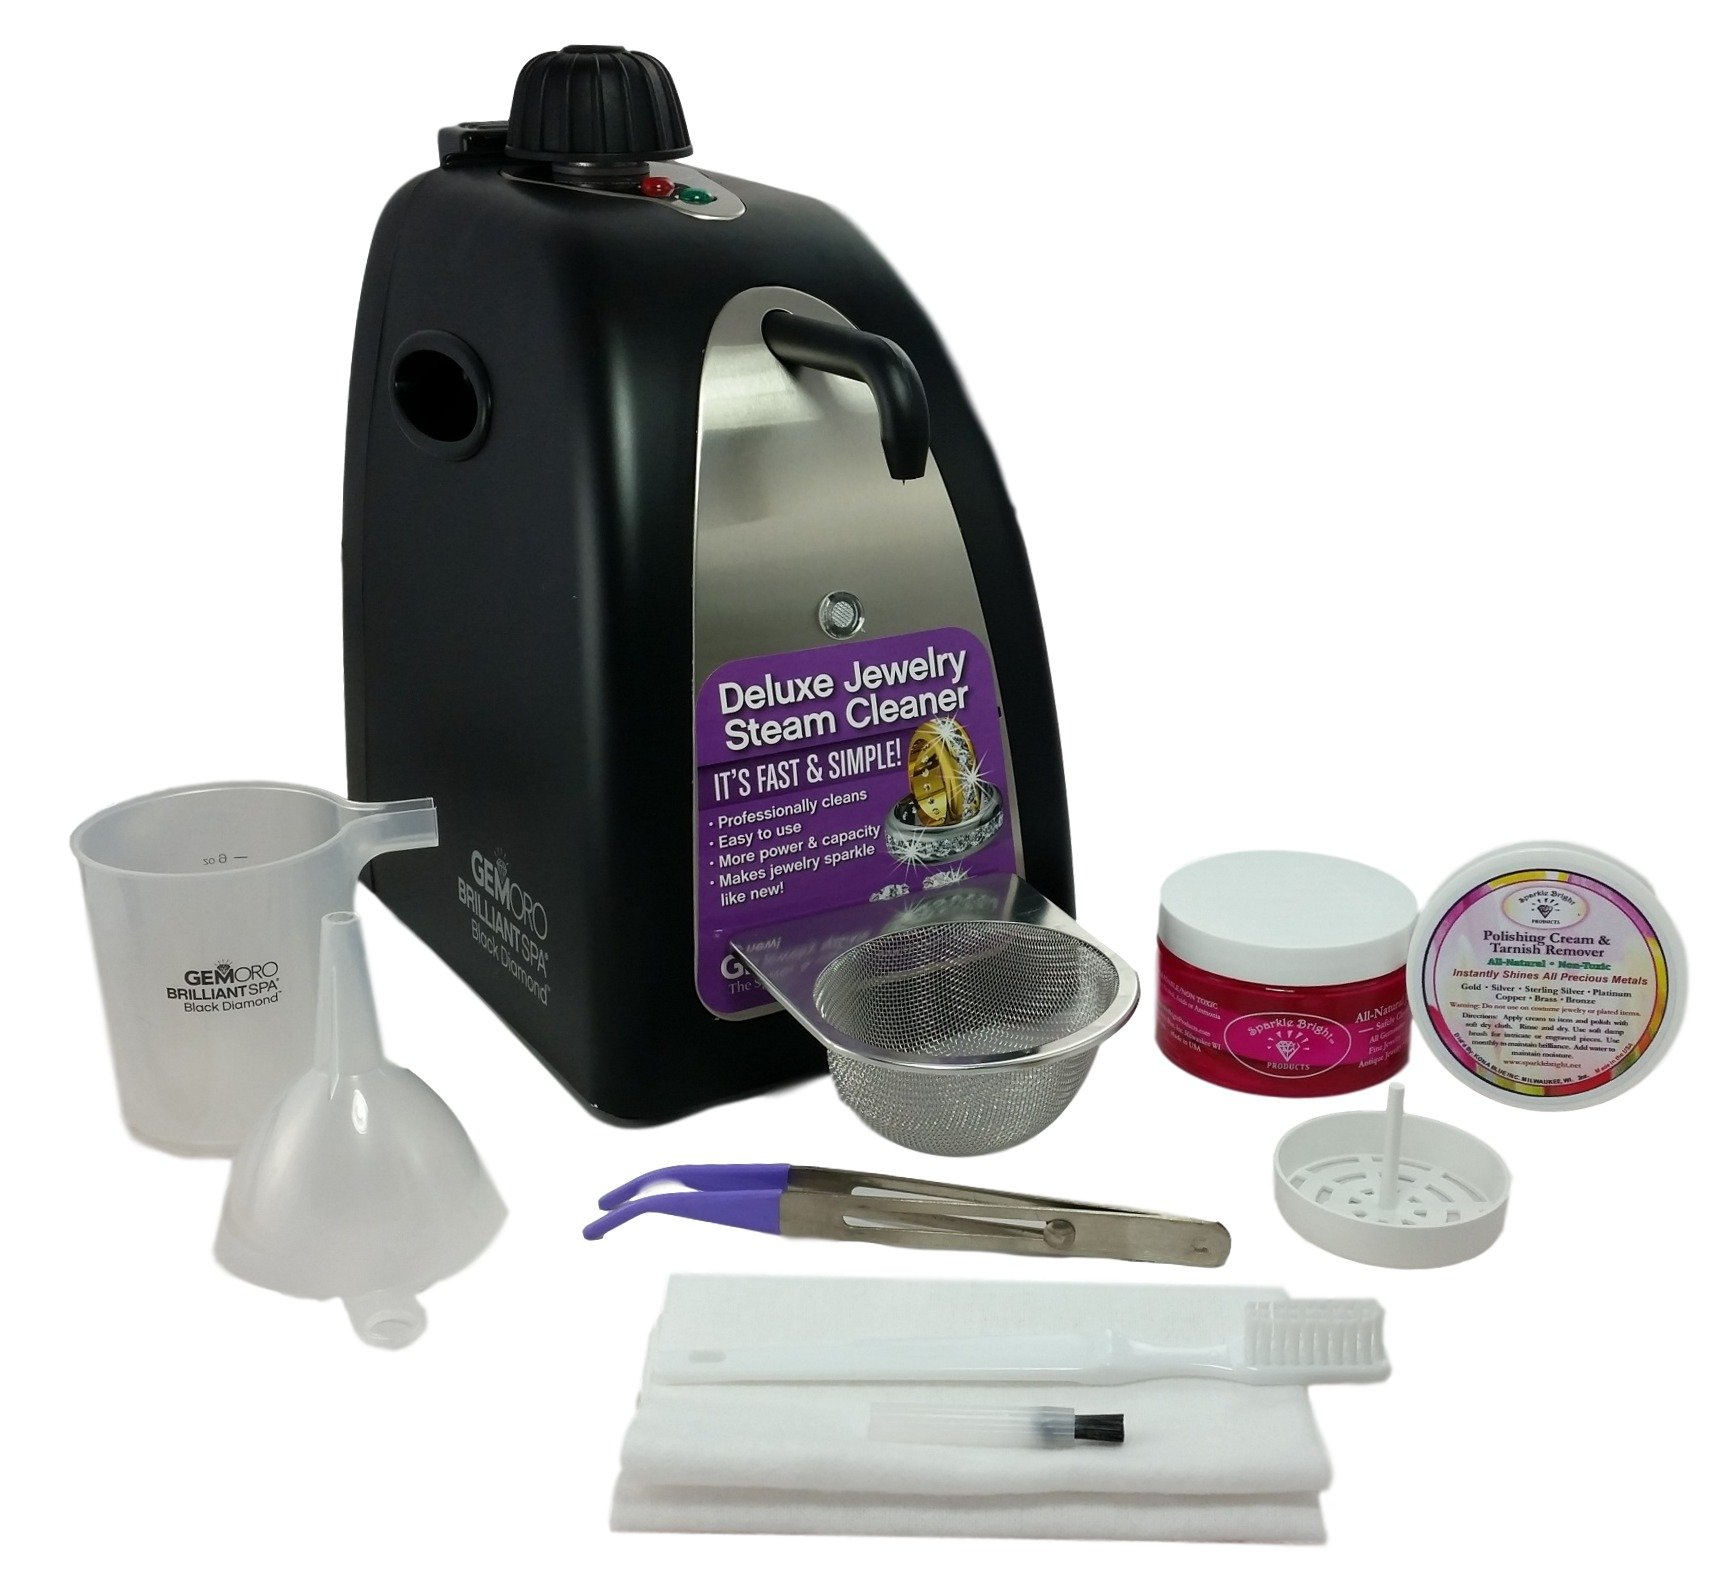 GEMORO 0362 BLACK DIAMOND BRILLIANT SPA BLACK MATTE STEAM JEWELRY CLEANING KIT Includes Sparkle Bright Products Jewelry Cleaner Kit by Sparkle Bright Products